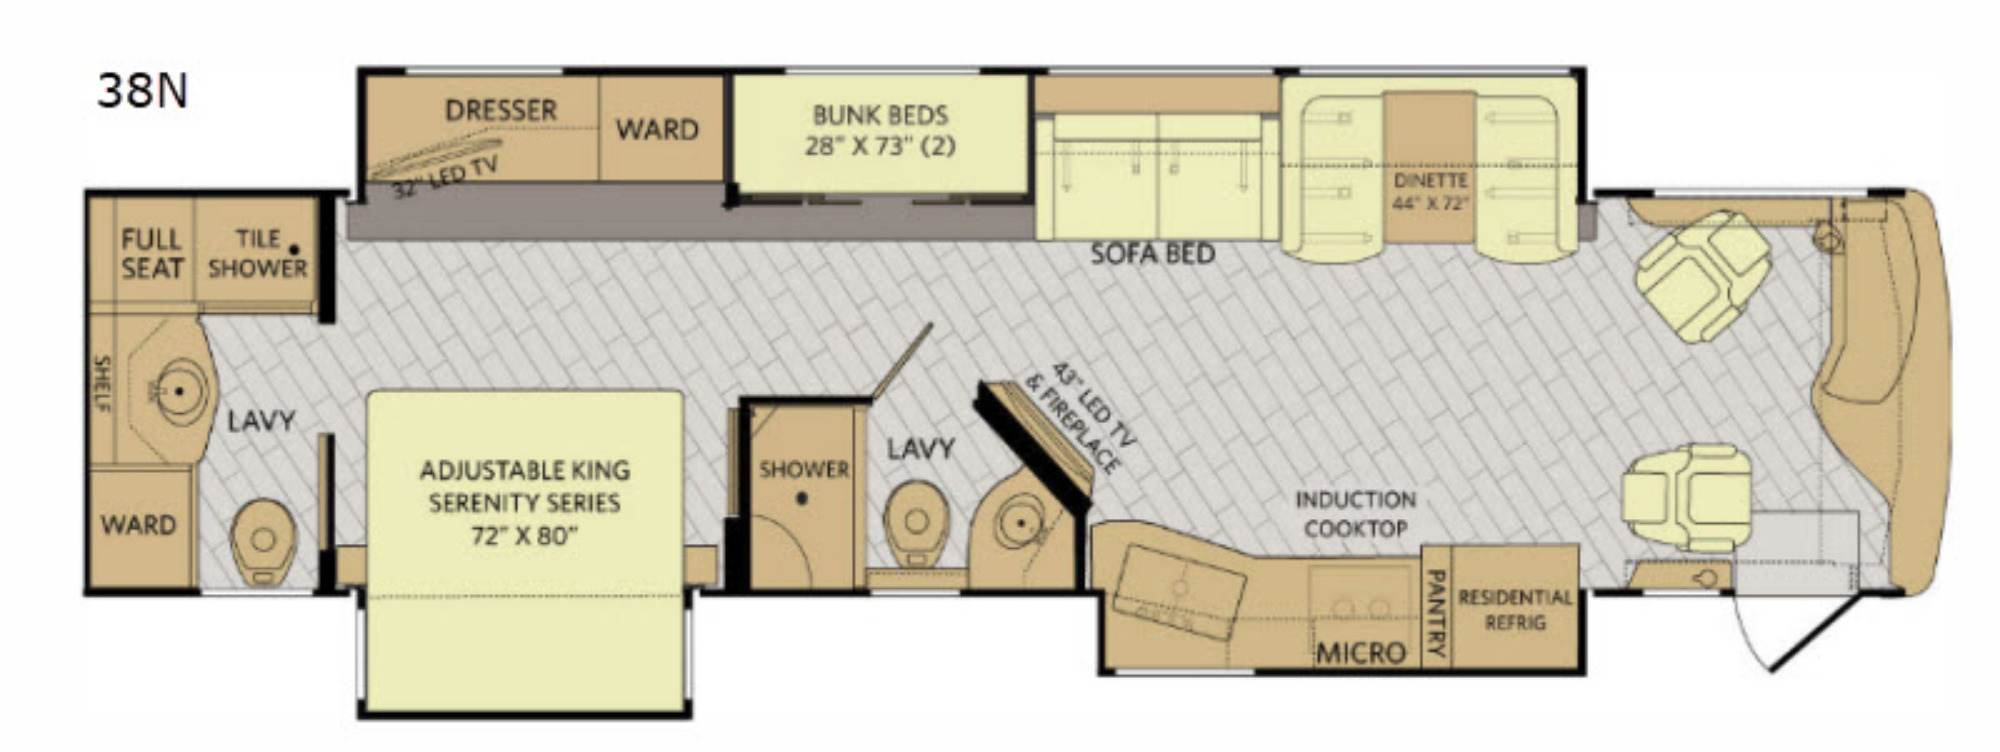 View Floor Plan for 2020 FLEETWOOD DISCOVERY 38N